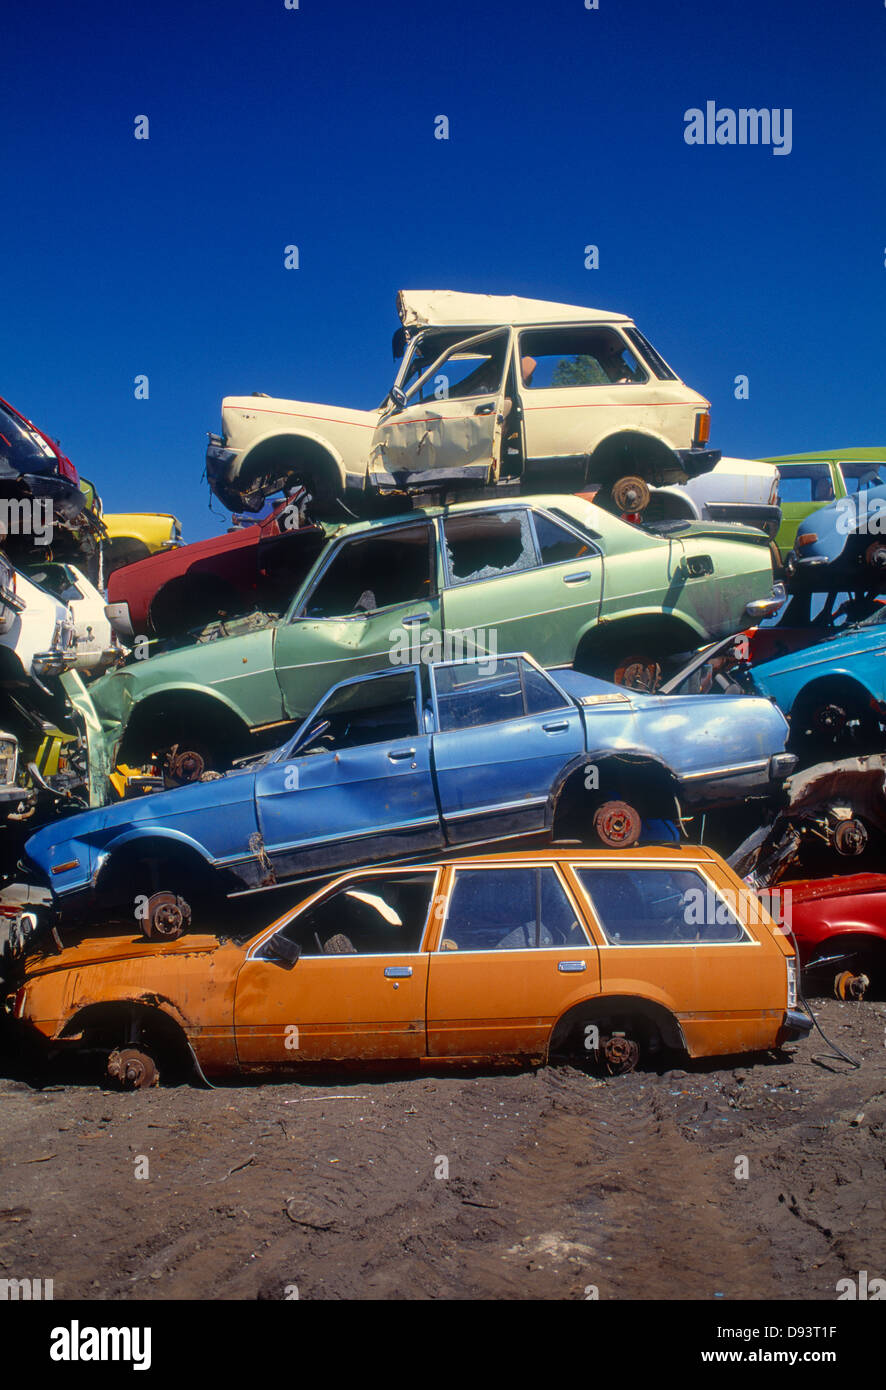 Stack of wrecked cars in junkyard Stock Photo, Royalty Free Image ...